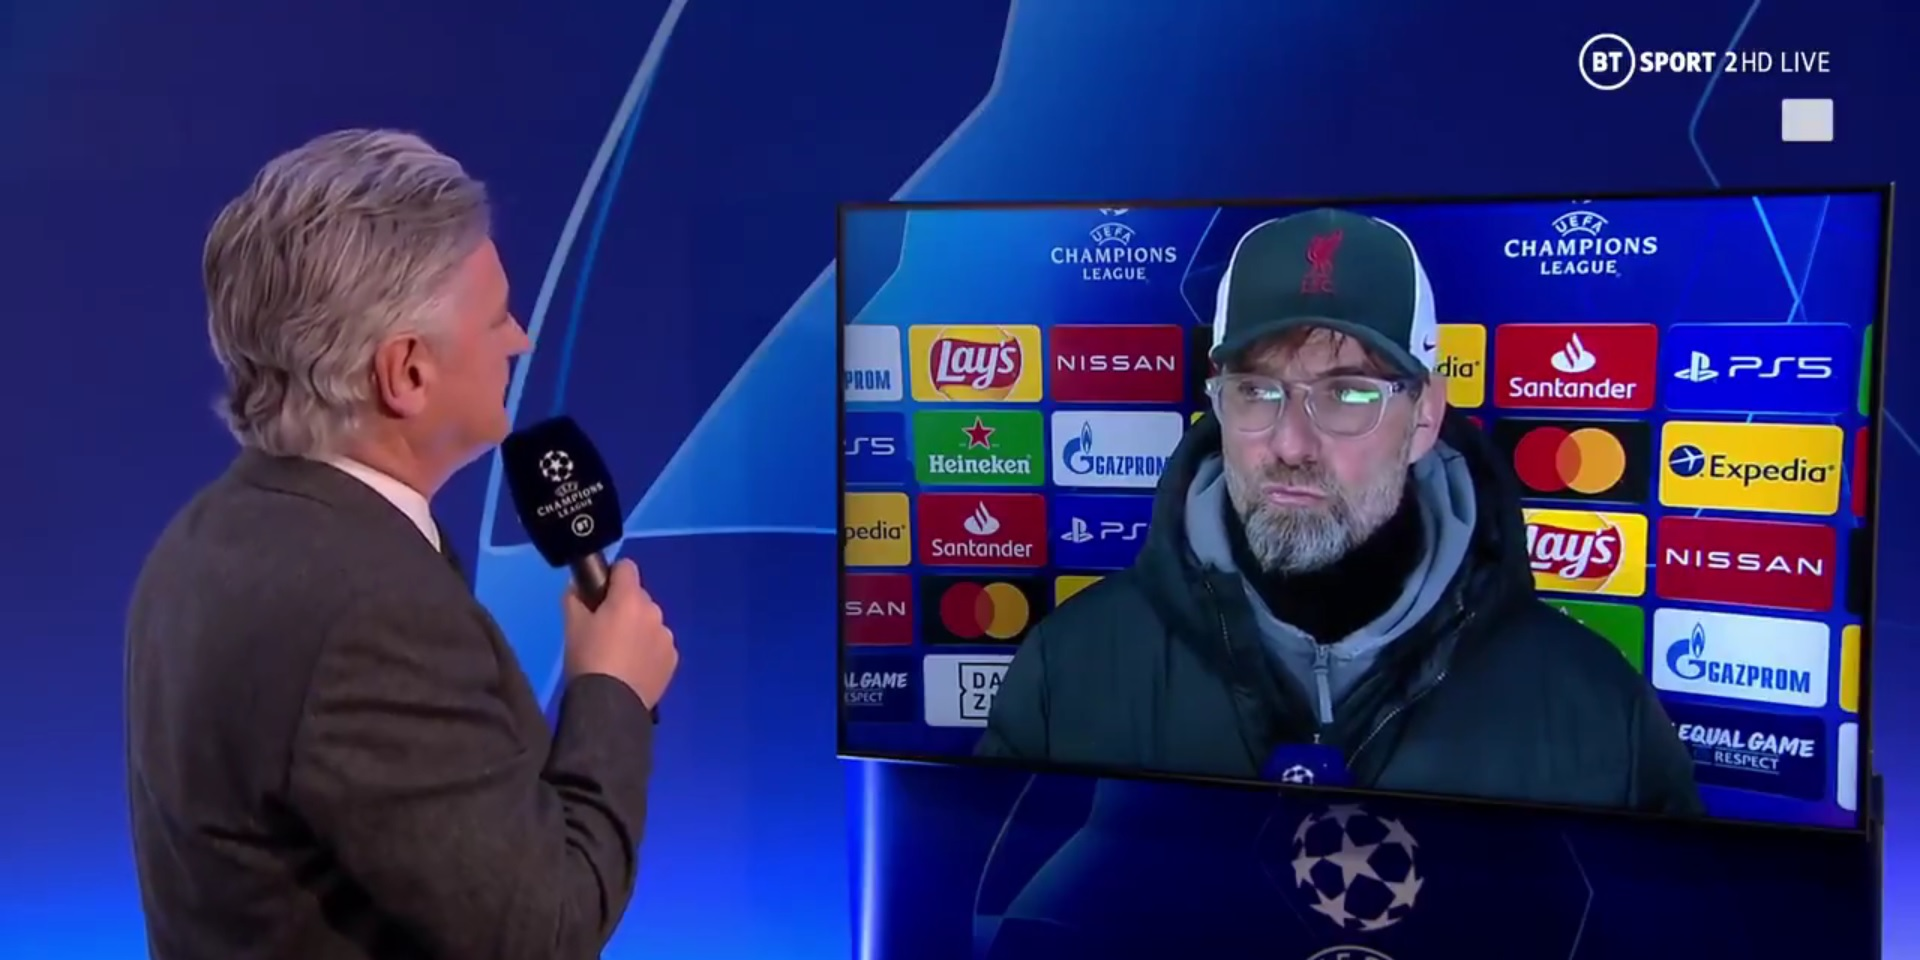 """(Video) Jurgen Klopp rejects reporter's claim Liverpool are """"mentality giants"""" again"""